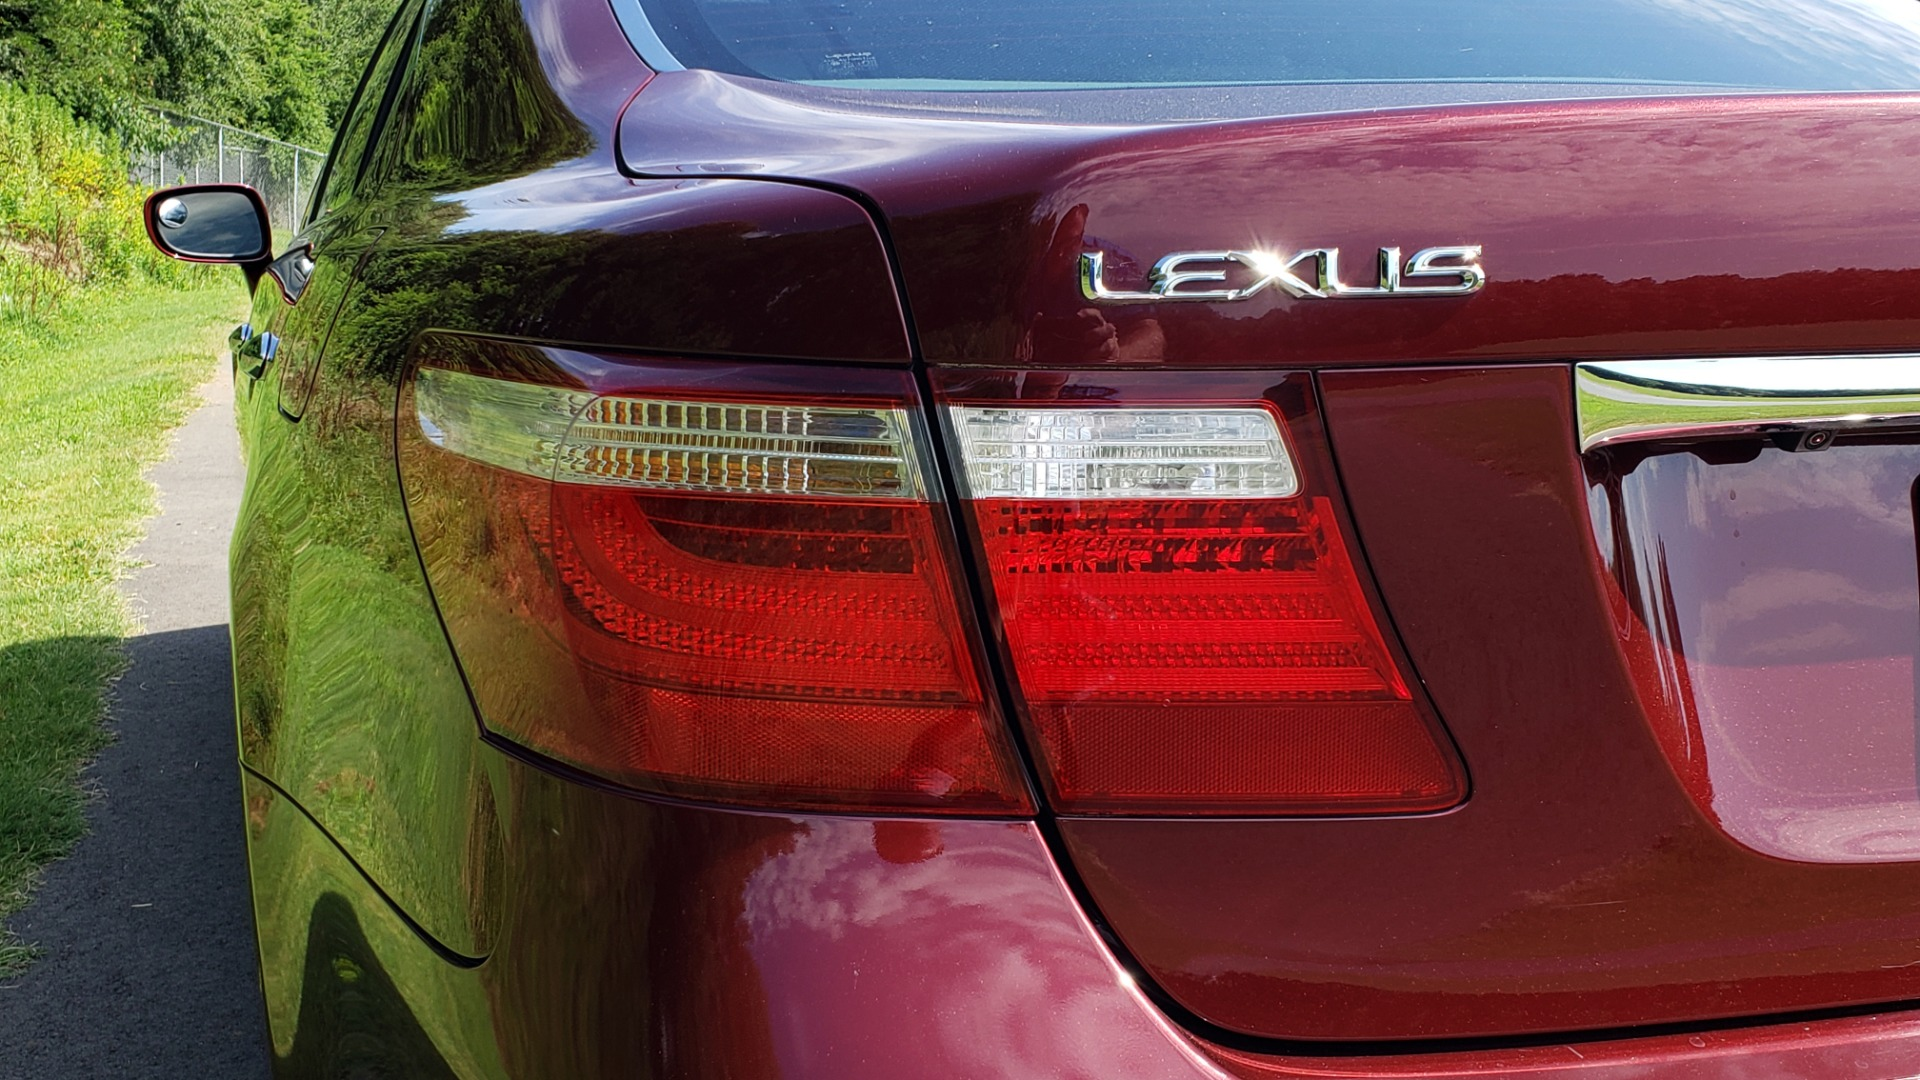 Used 2007 Lexus LS 460 LWB / LUX / NAV / SUNROOF / MARK LEVINSON SND / AIR SUSP for sale Sold at Formula Imports in Charlotte NC 28227 25